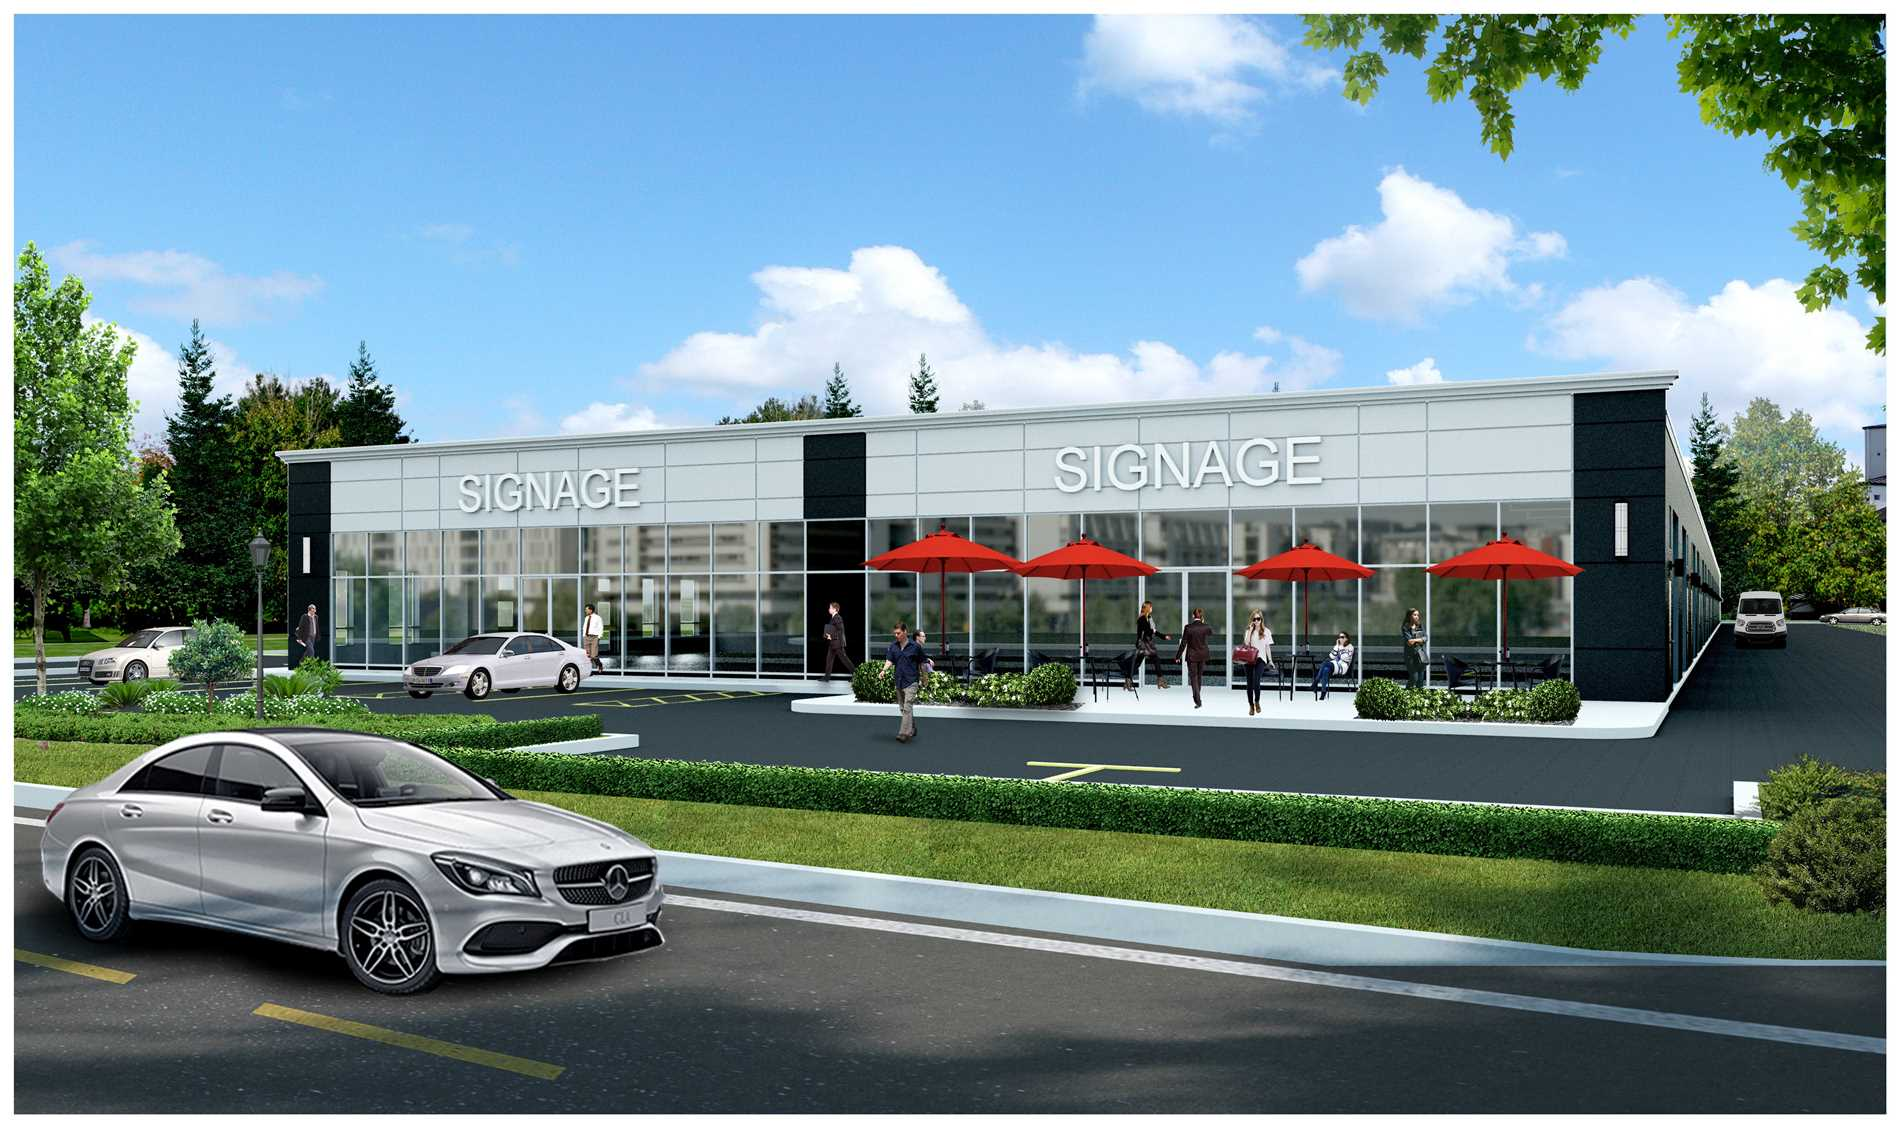 Amazing Opportunity To Invest In Brampton East Industrial Area. Desirable M2 Zoning Ideal For Automotive (Car/Truck) Repair/Body Shop, Manufacturing, Cleaning, Packaging, Processing, Printing Establishment, Warehouse With Endless Uses And Possibilities. Great For New Start-Ups Or Growing Businesses. Minutes Away From Highway 410 & 407. Great Exposure On Busy Road.